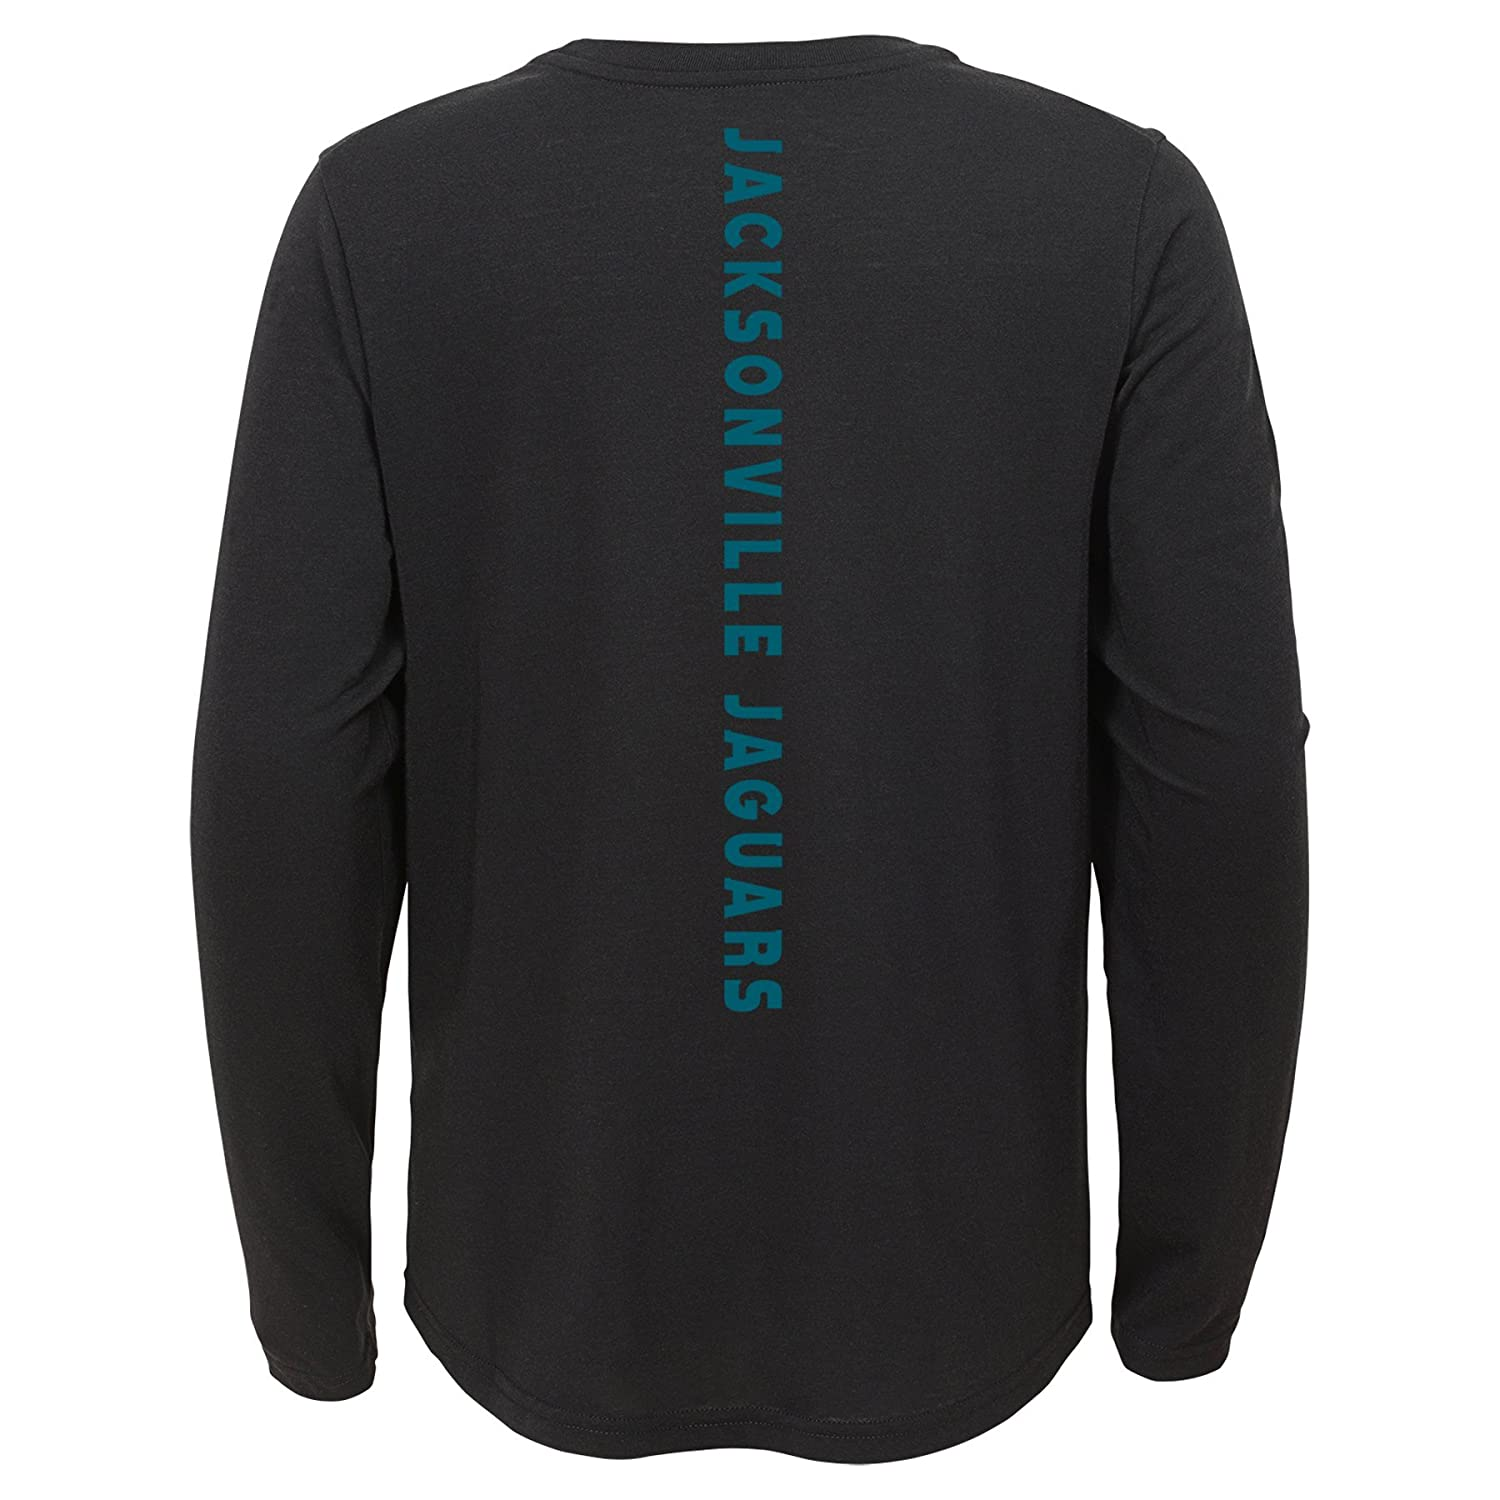 Outerstuff NFL Jacksonville Jaguars Youth Boys Flux Long Sleeve Ultra Tee Black Youth Small 8